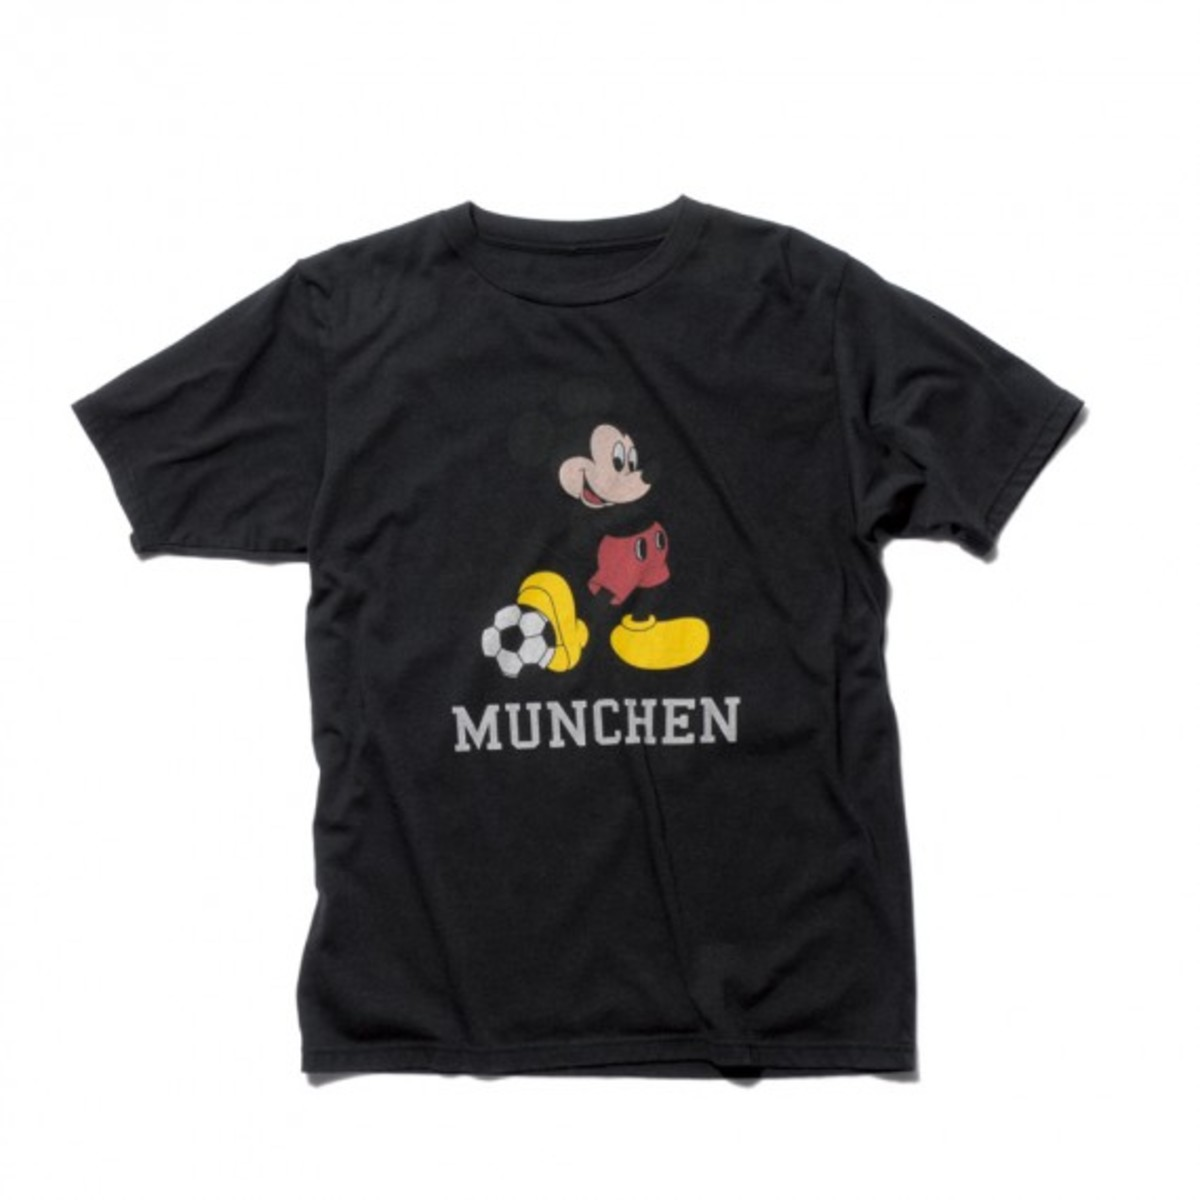 retro-span-plating-stitch-mickey-mouse-city-name-t-shirt-02